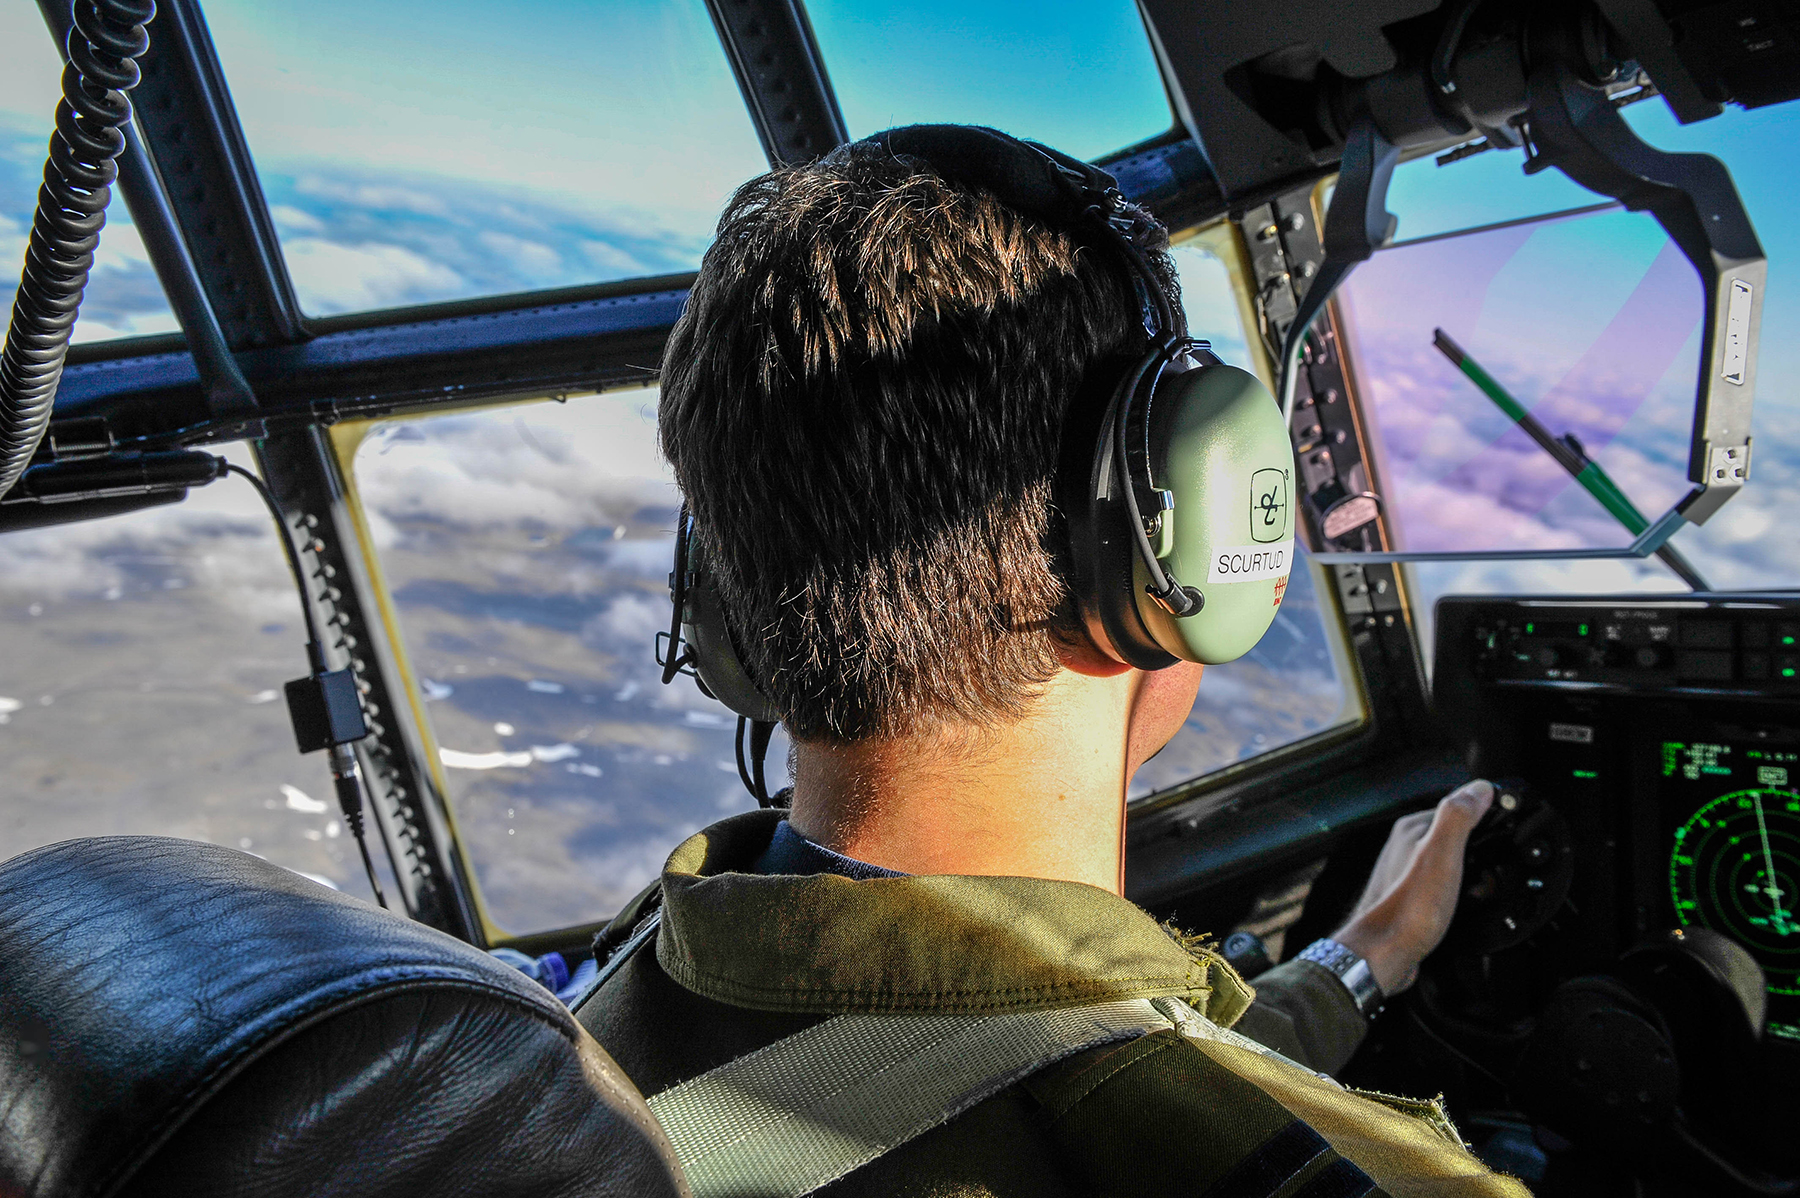 Air Force focuses on pilot retention - Skies Mag